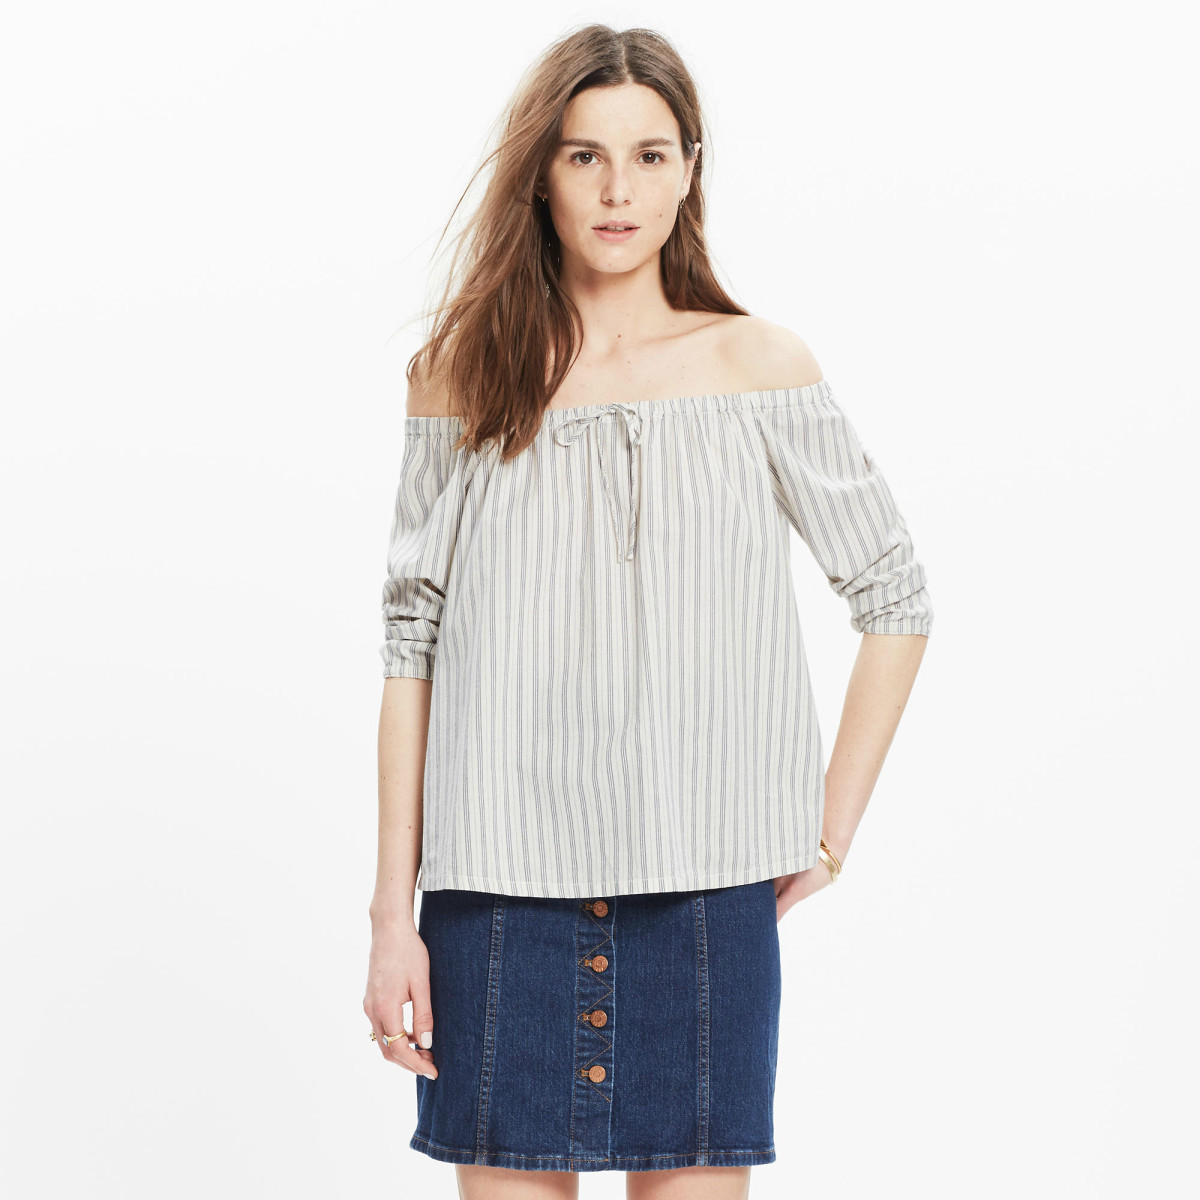 Madewell Striped Off-the-Shoulder Top, $72, available at Madewell.